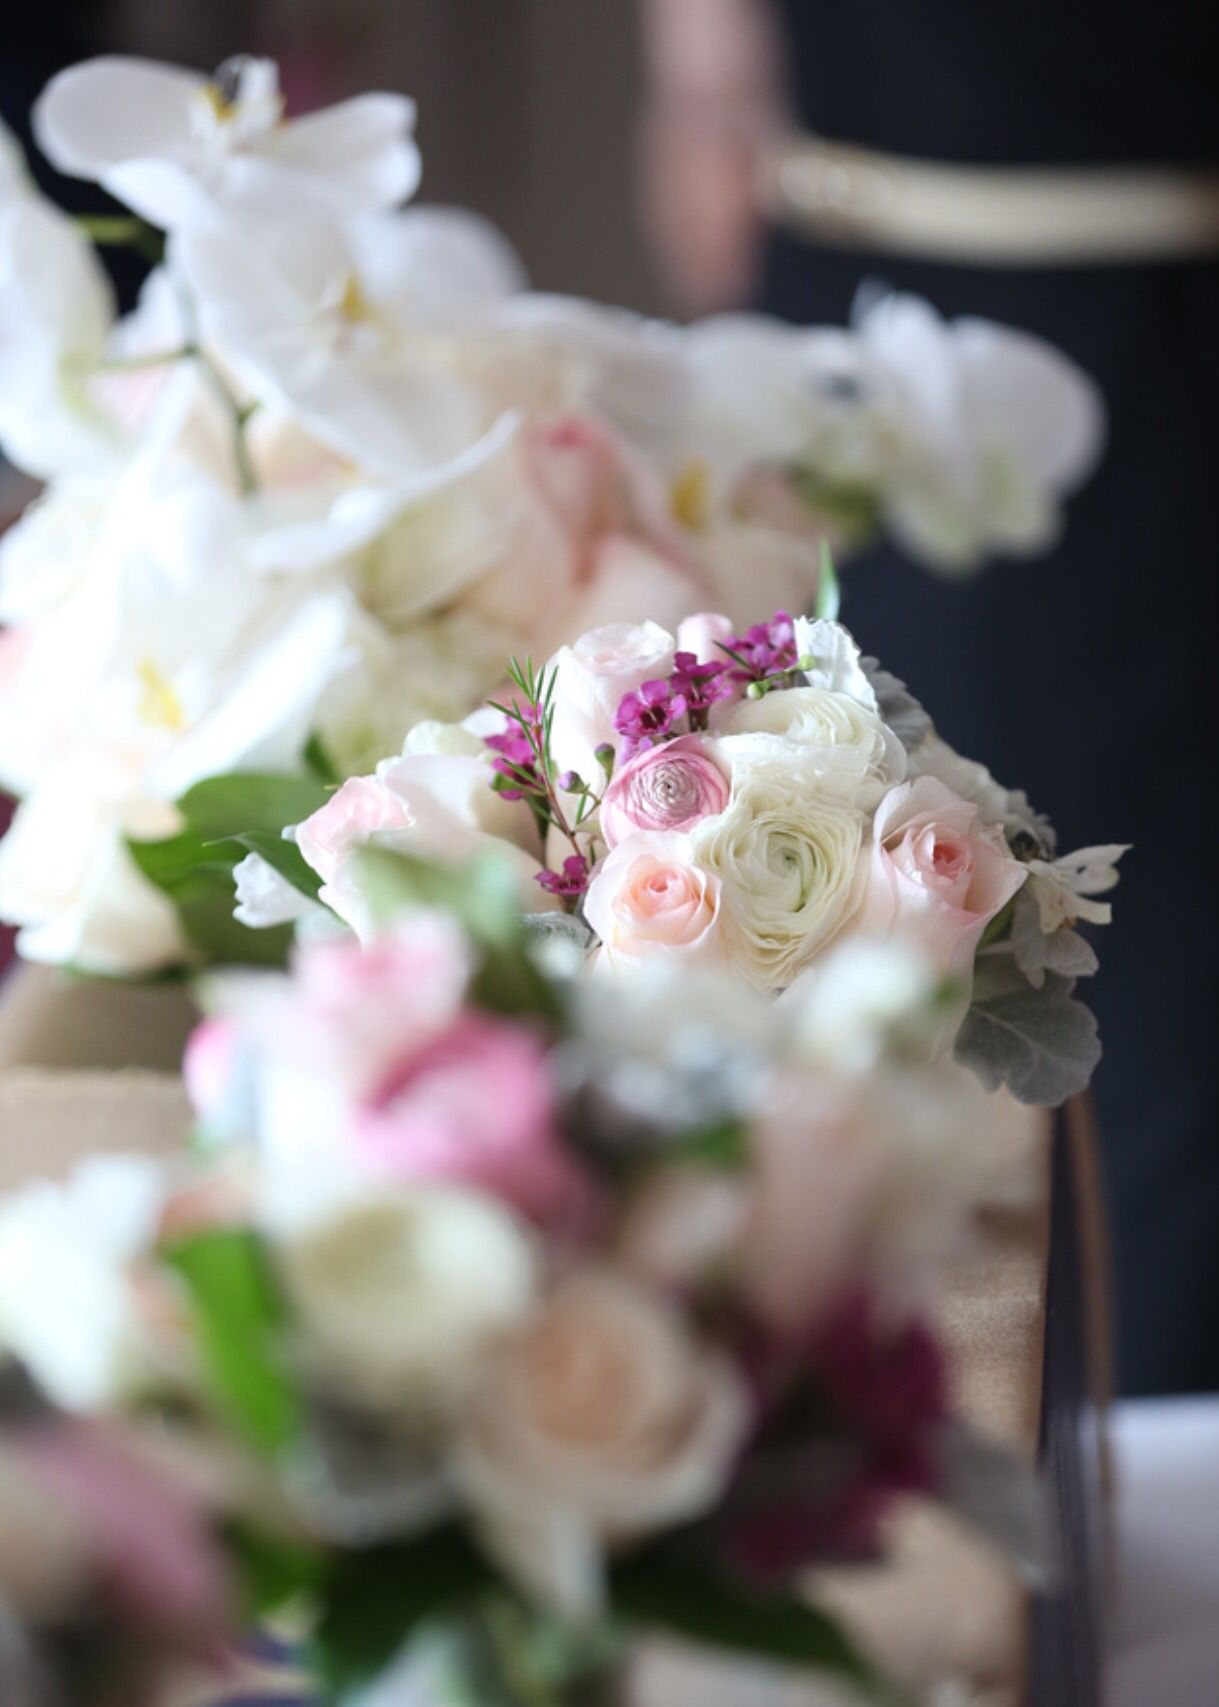 York Pa Weddings Flowers Everyone Deserves Flowers Photos Loving Memories Photography Floral Wedding Pink Bouquet Memories Photography